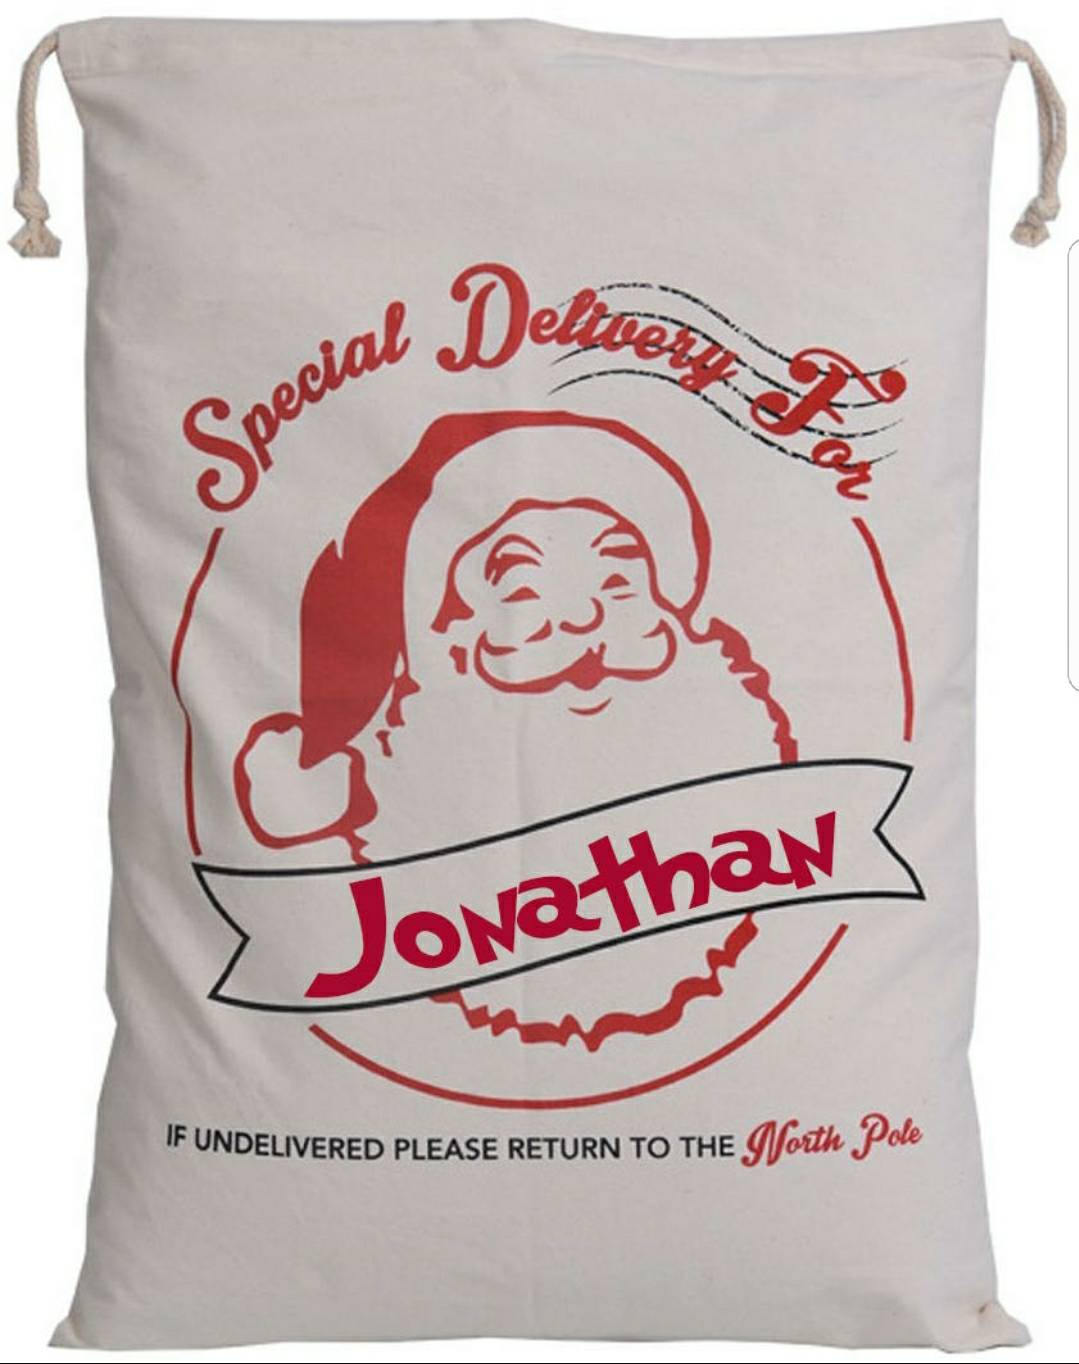 Free Shipping - Embroidered Santa Sack, personalized, monogrammed, family name, extra large santa gift, present, toys sack bag